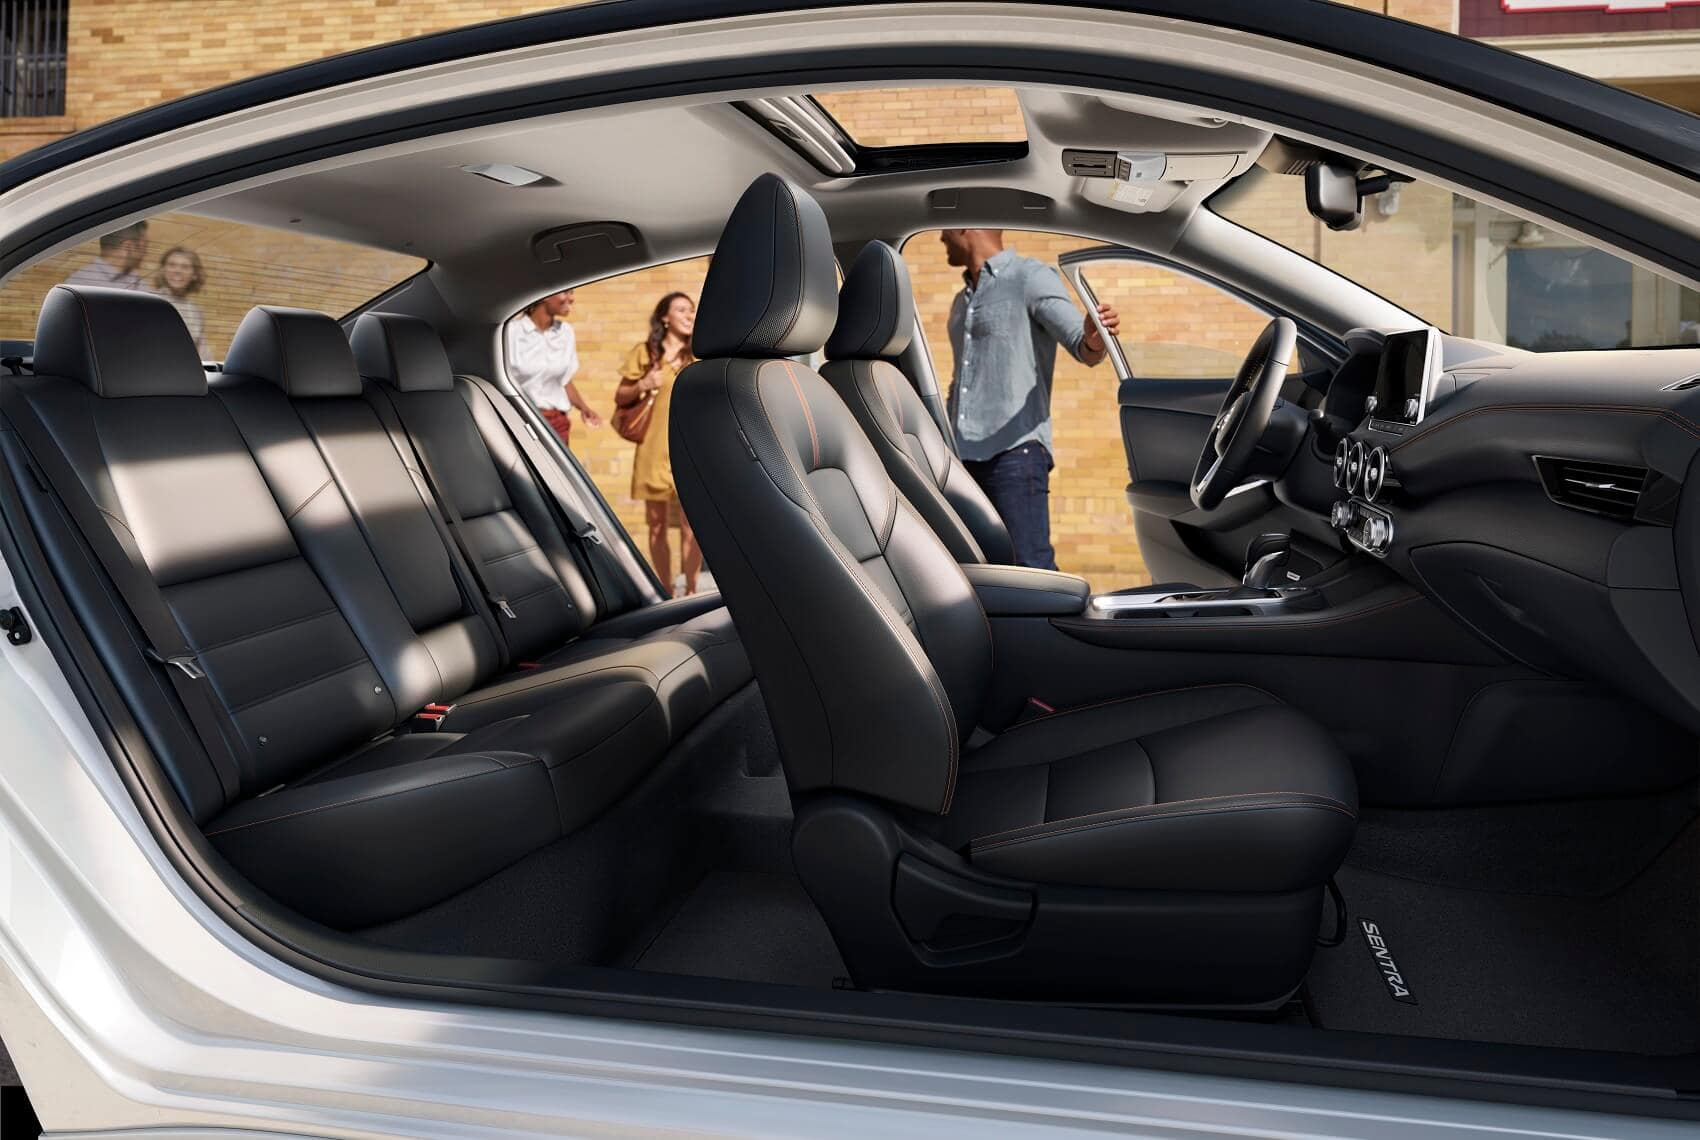 2020 Nissan Sentra Interior Space